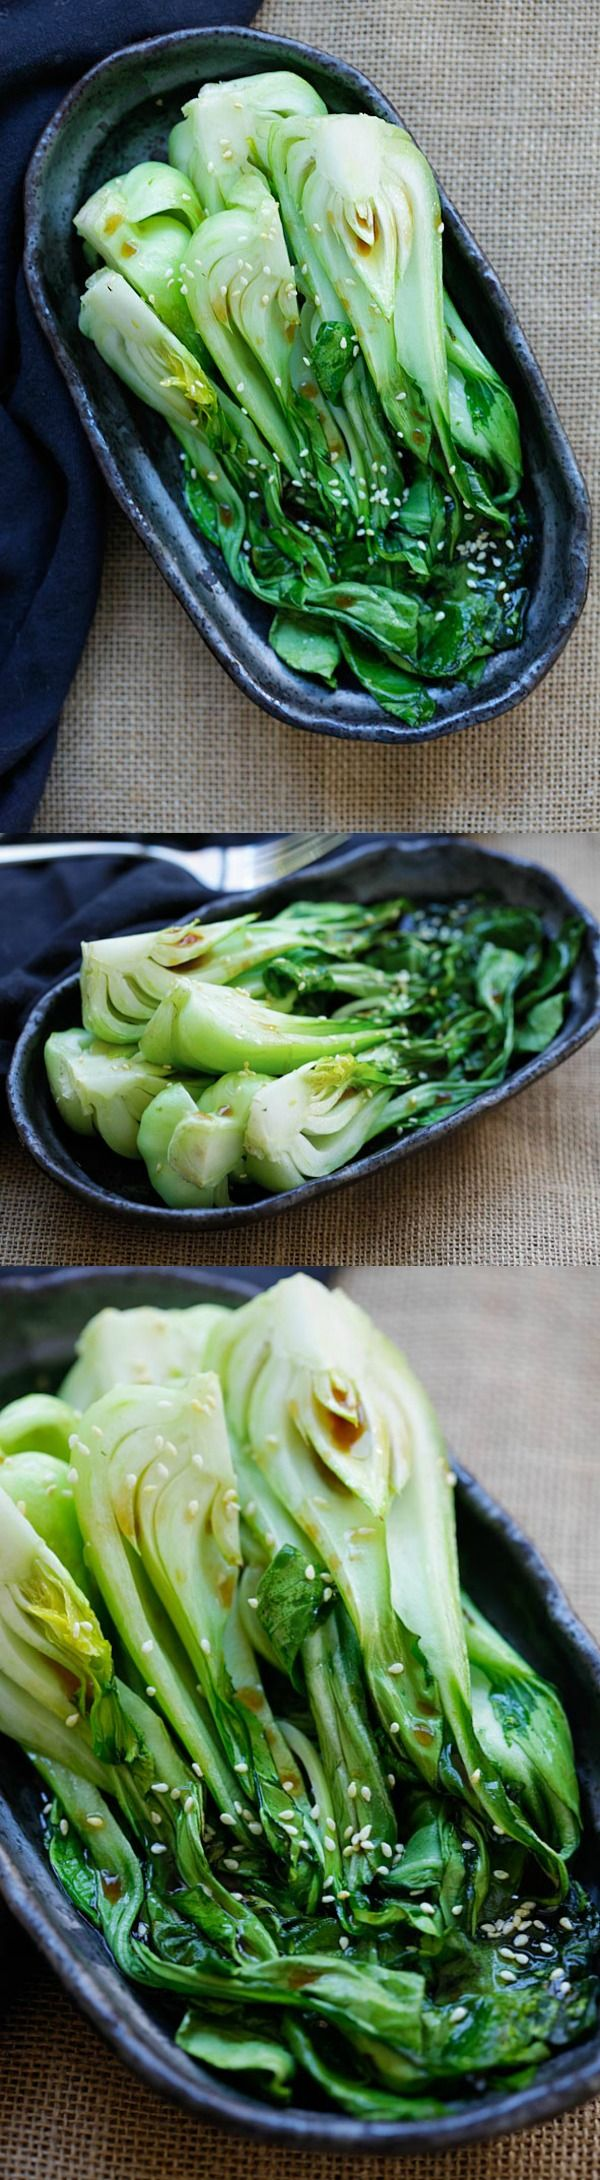 Roasted Bok Choy by rasamalaysia: Easy vegetable recipe that takes only 10 mins. Healthy and delicious with a soy-sesame dressing. #Bok_Choy #Healthy